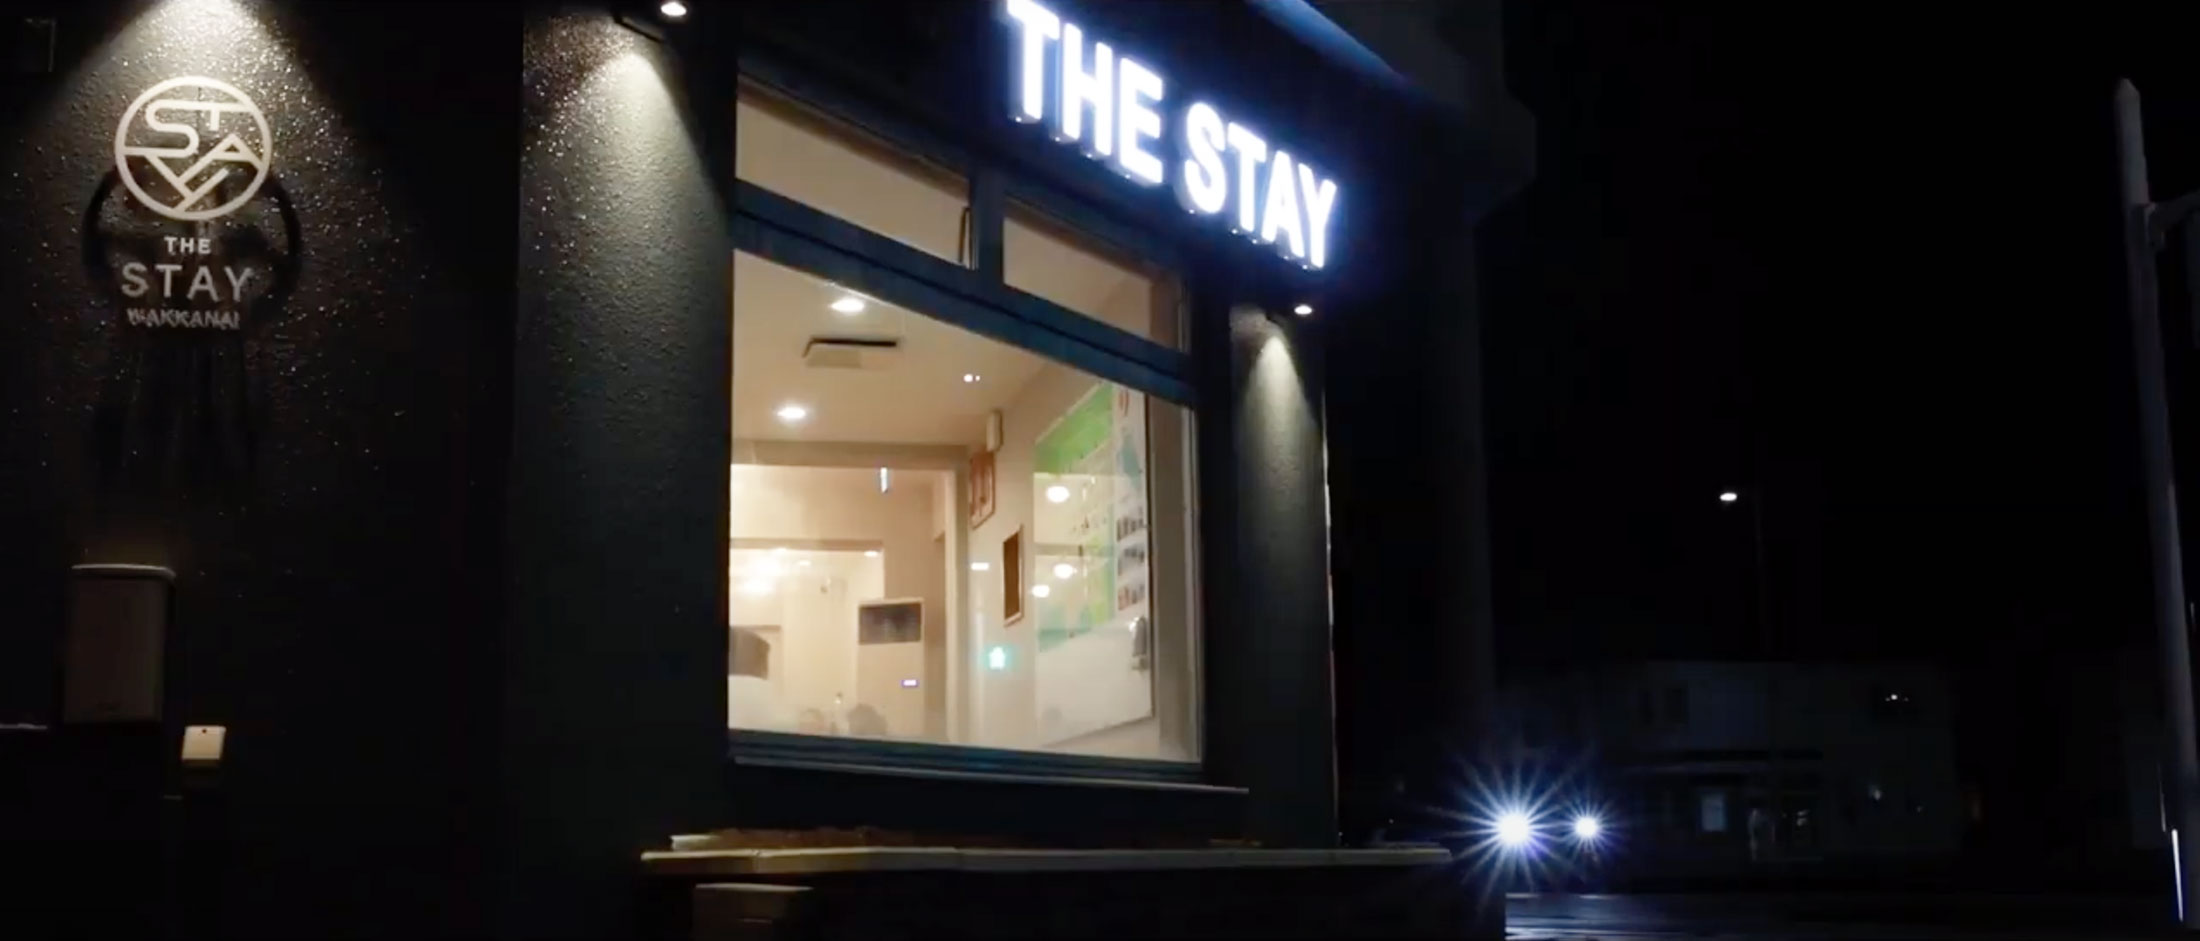 THE STAY